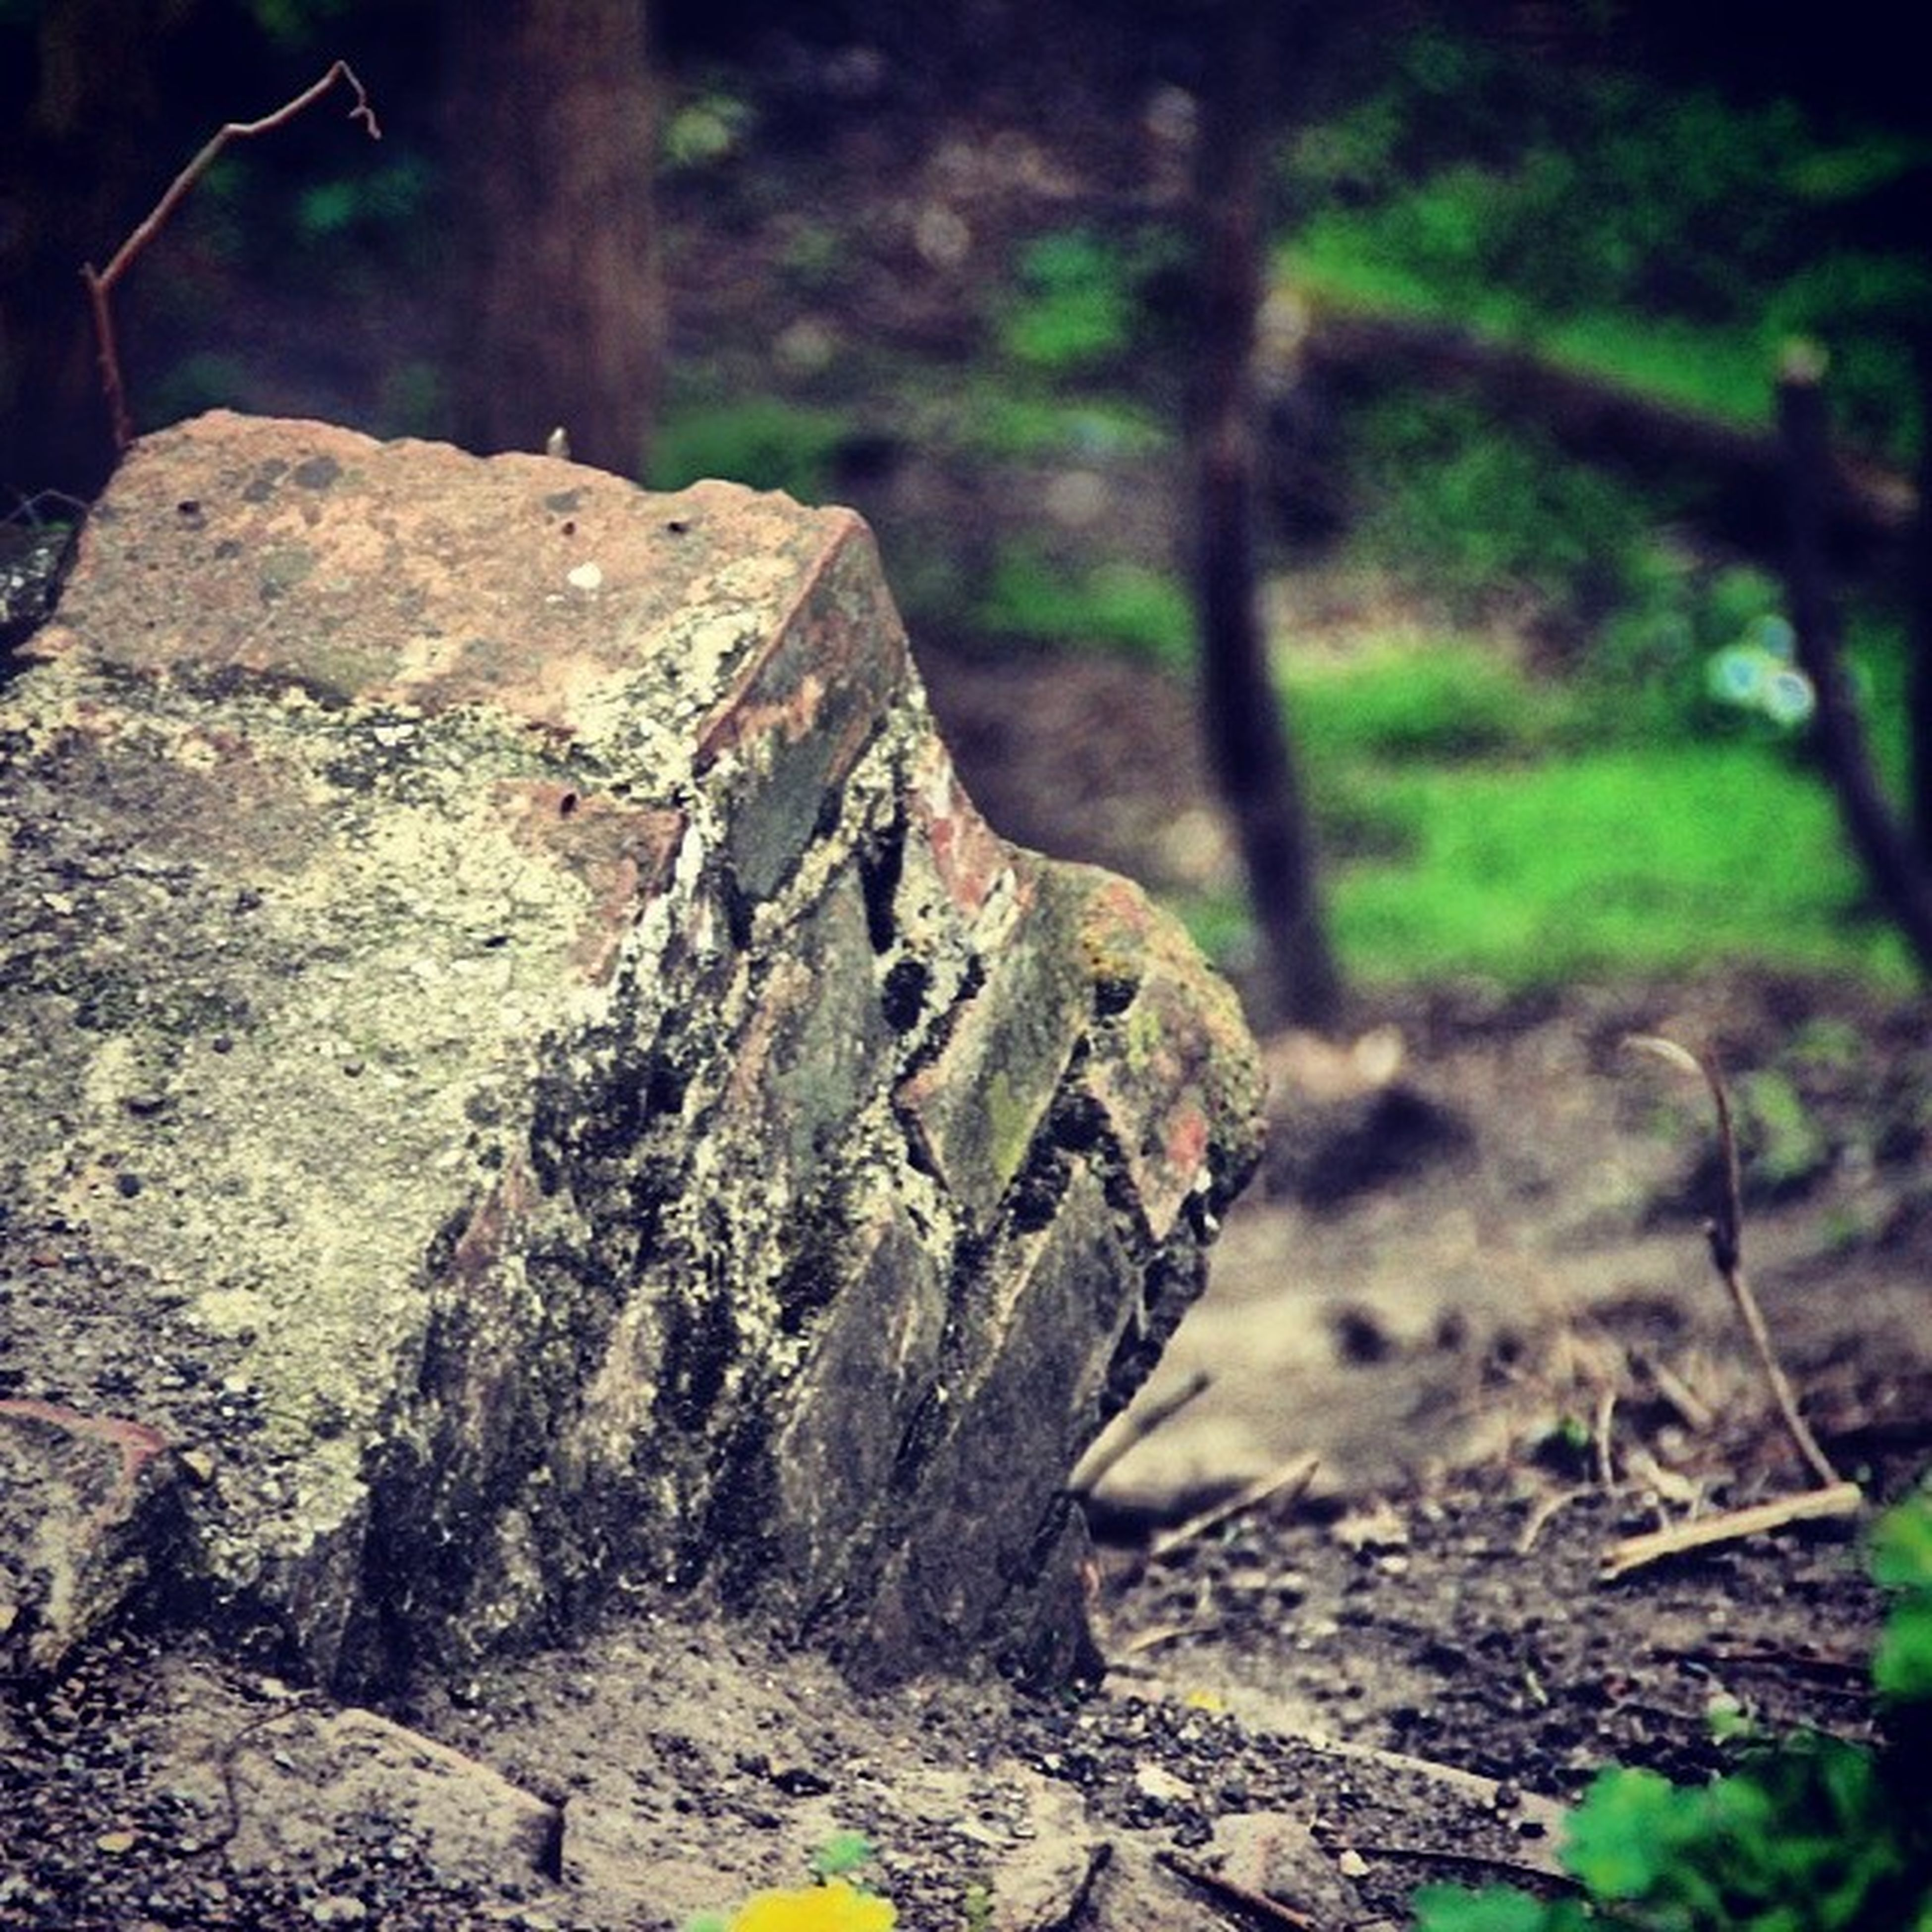 forest, nature, tree trunk, rock - object, focus on foreground, moss, close-up, tree, fungus, textured, growth, outdoors, mushroom, day, tranquility, selective focus, log, no people, rock, wood - material